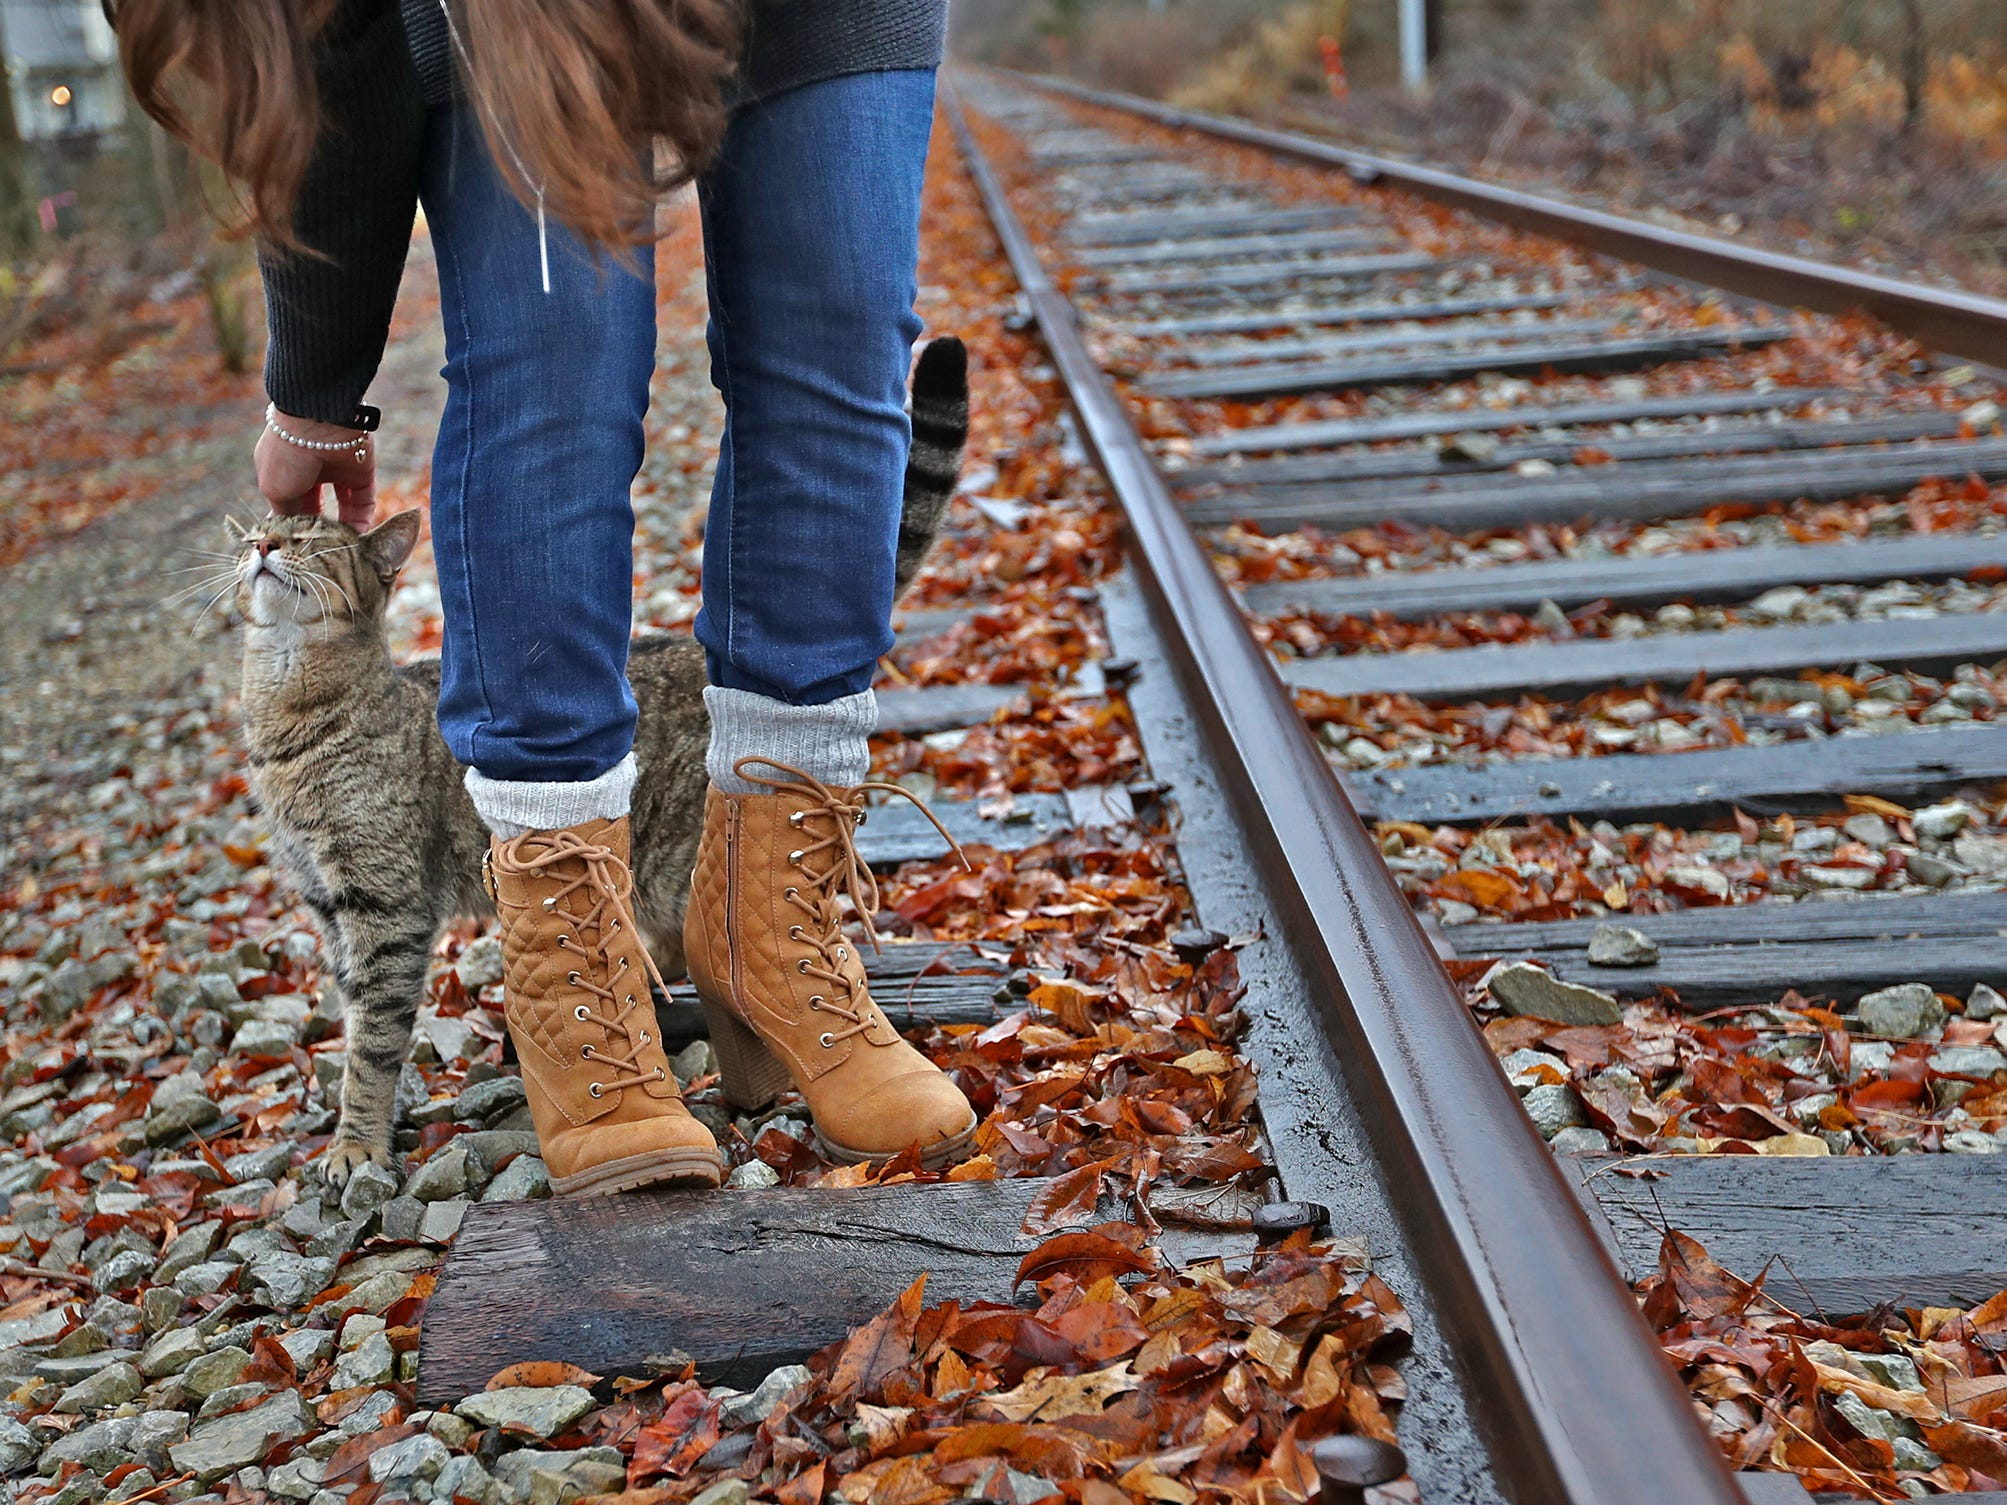 Marcy Kellar pets her cat as she stands along the Nickel Plate railroad tracks behind her Fishers home, Monday, Dec. 31, 2018.  She worries about her loss of privacy and the loss of her garden that fills her with joy, when a trail is built along the track.